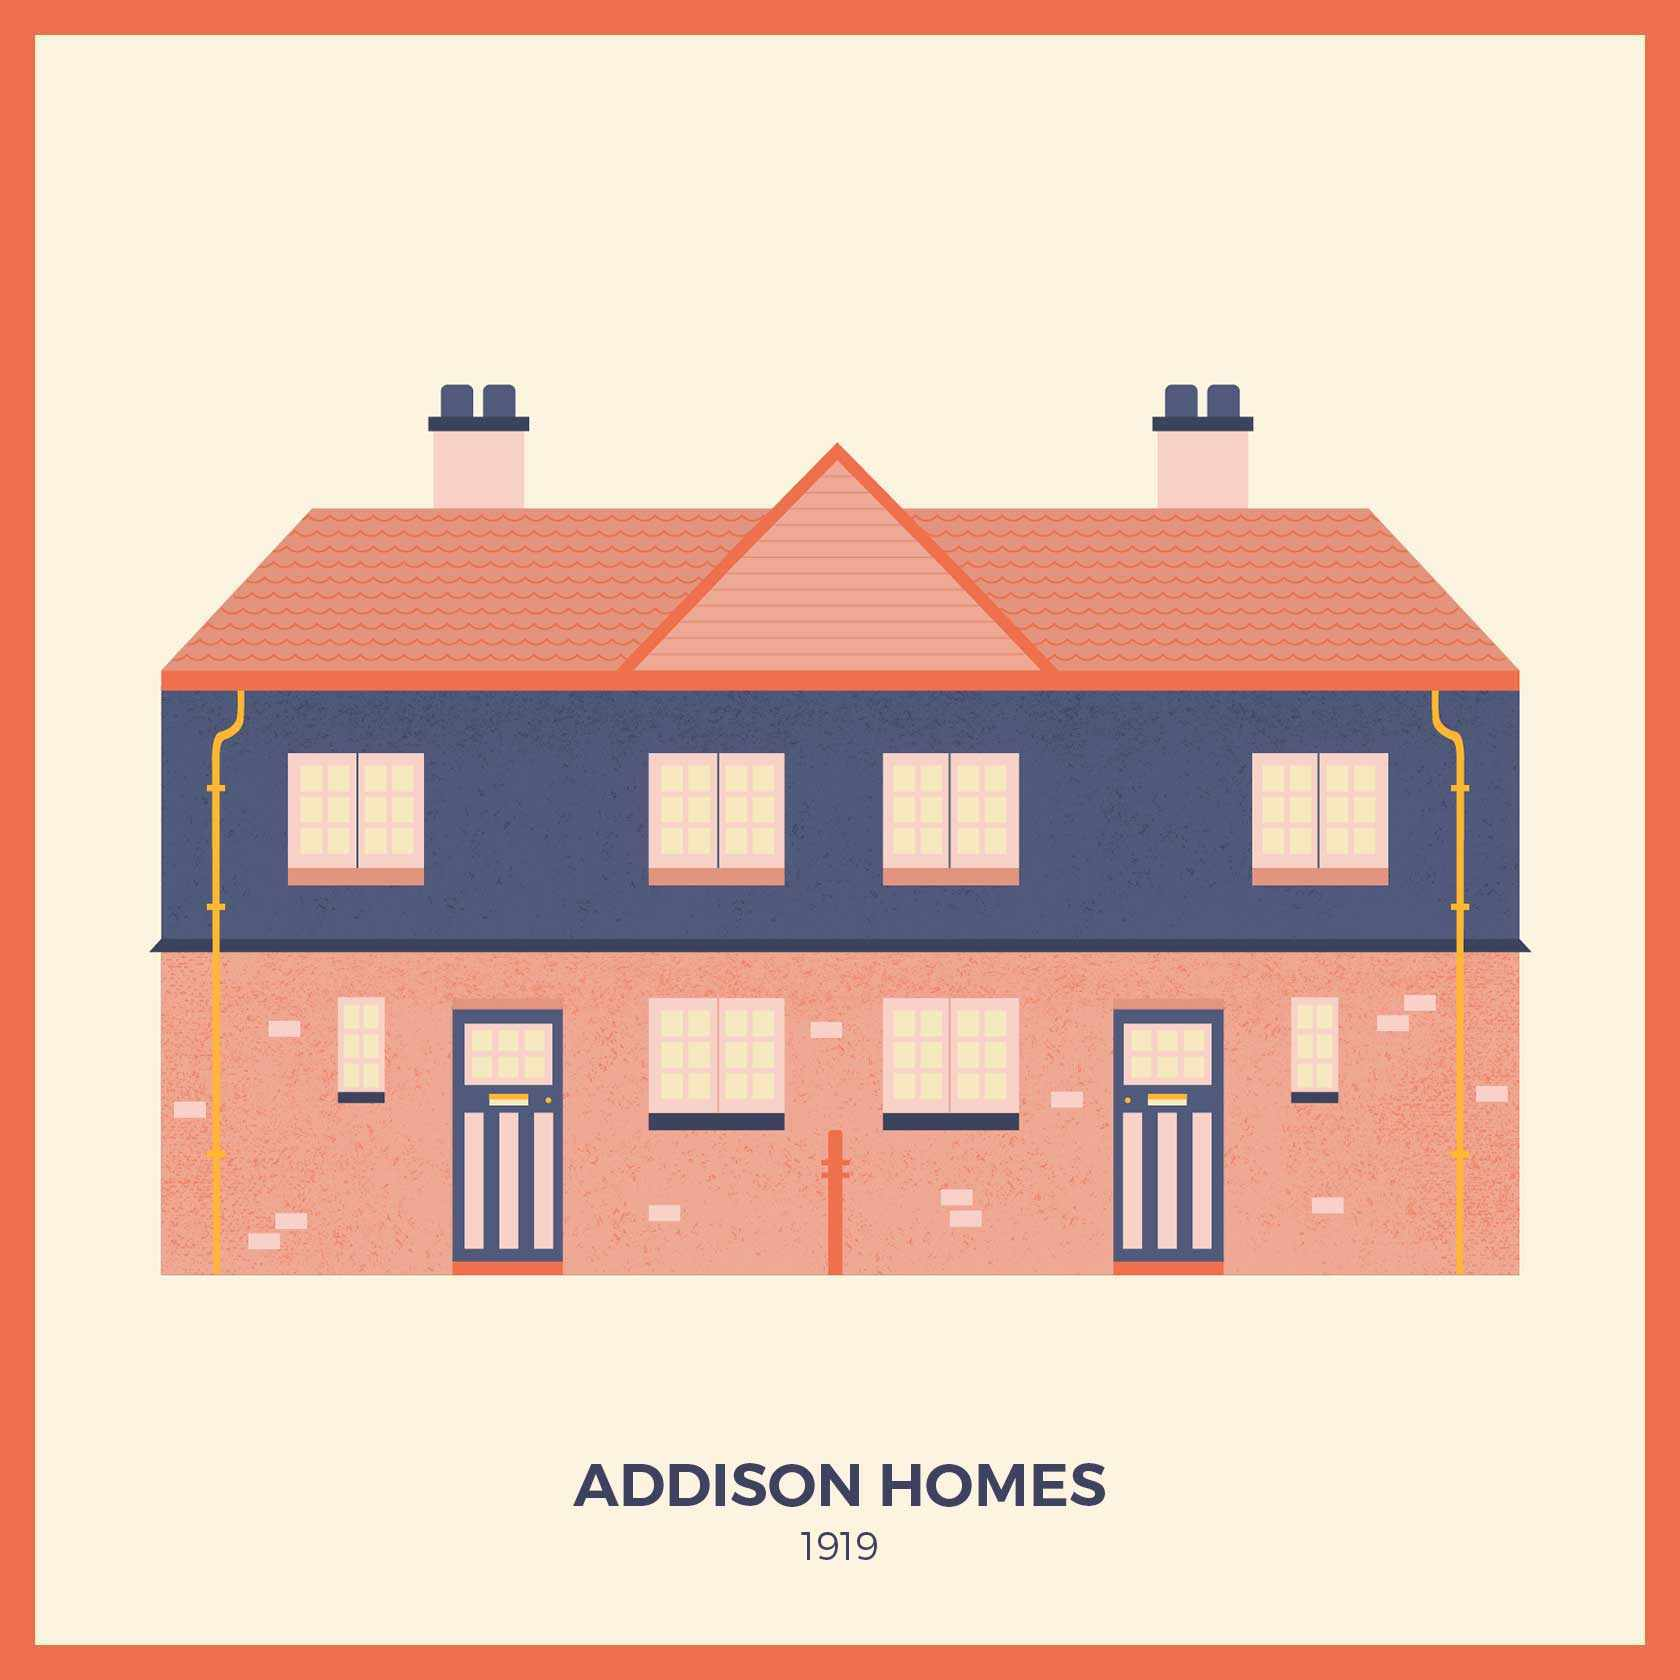 An example of an Addison home built after the First World War in the Arts and Crafts style